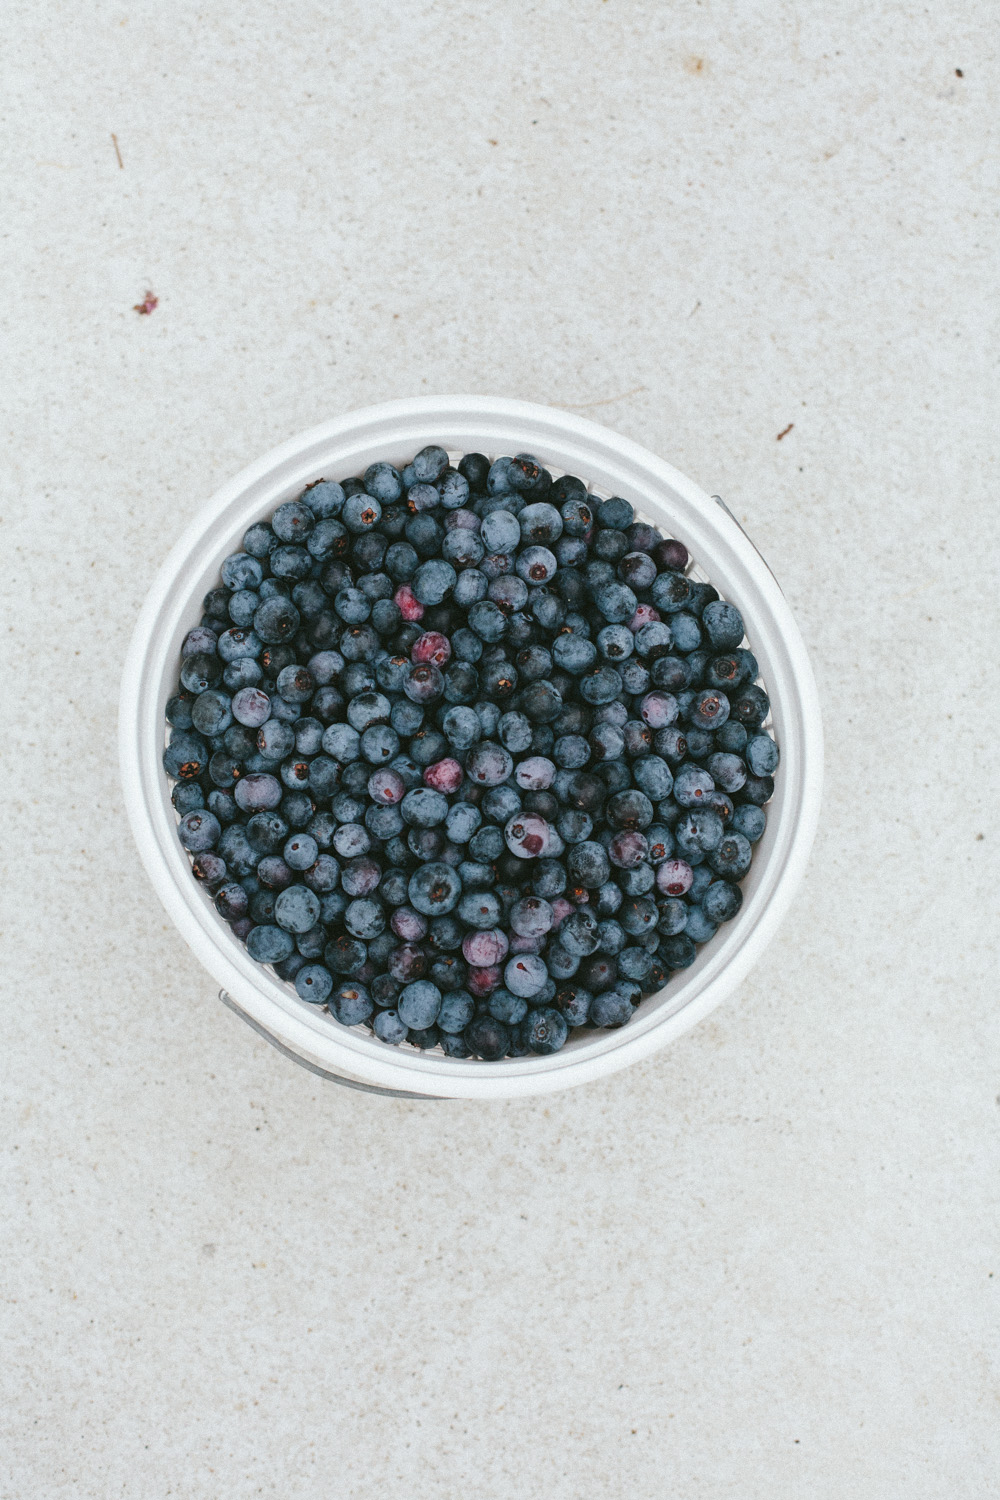 easy blueberry recipes to try